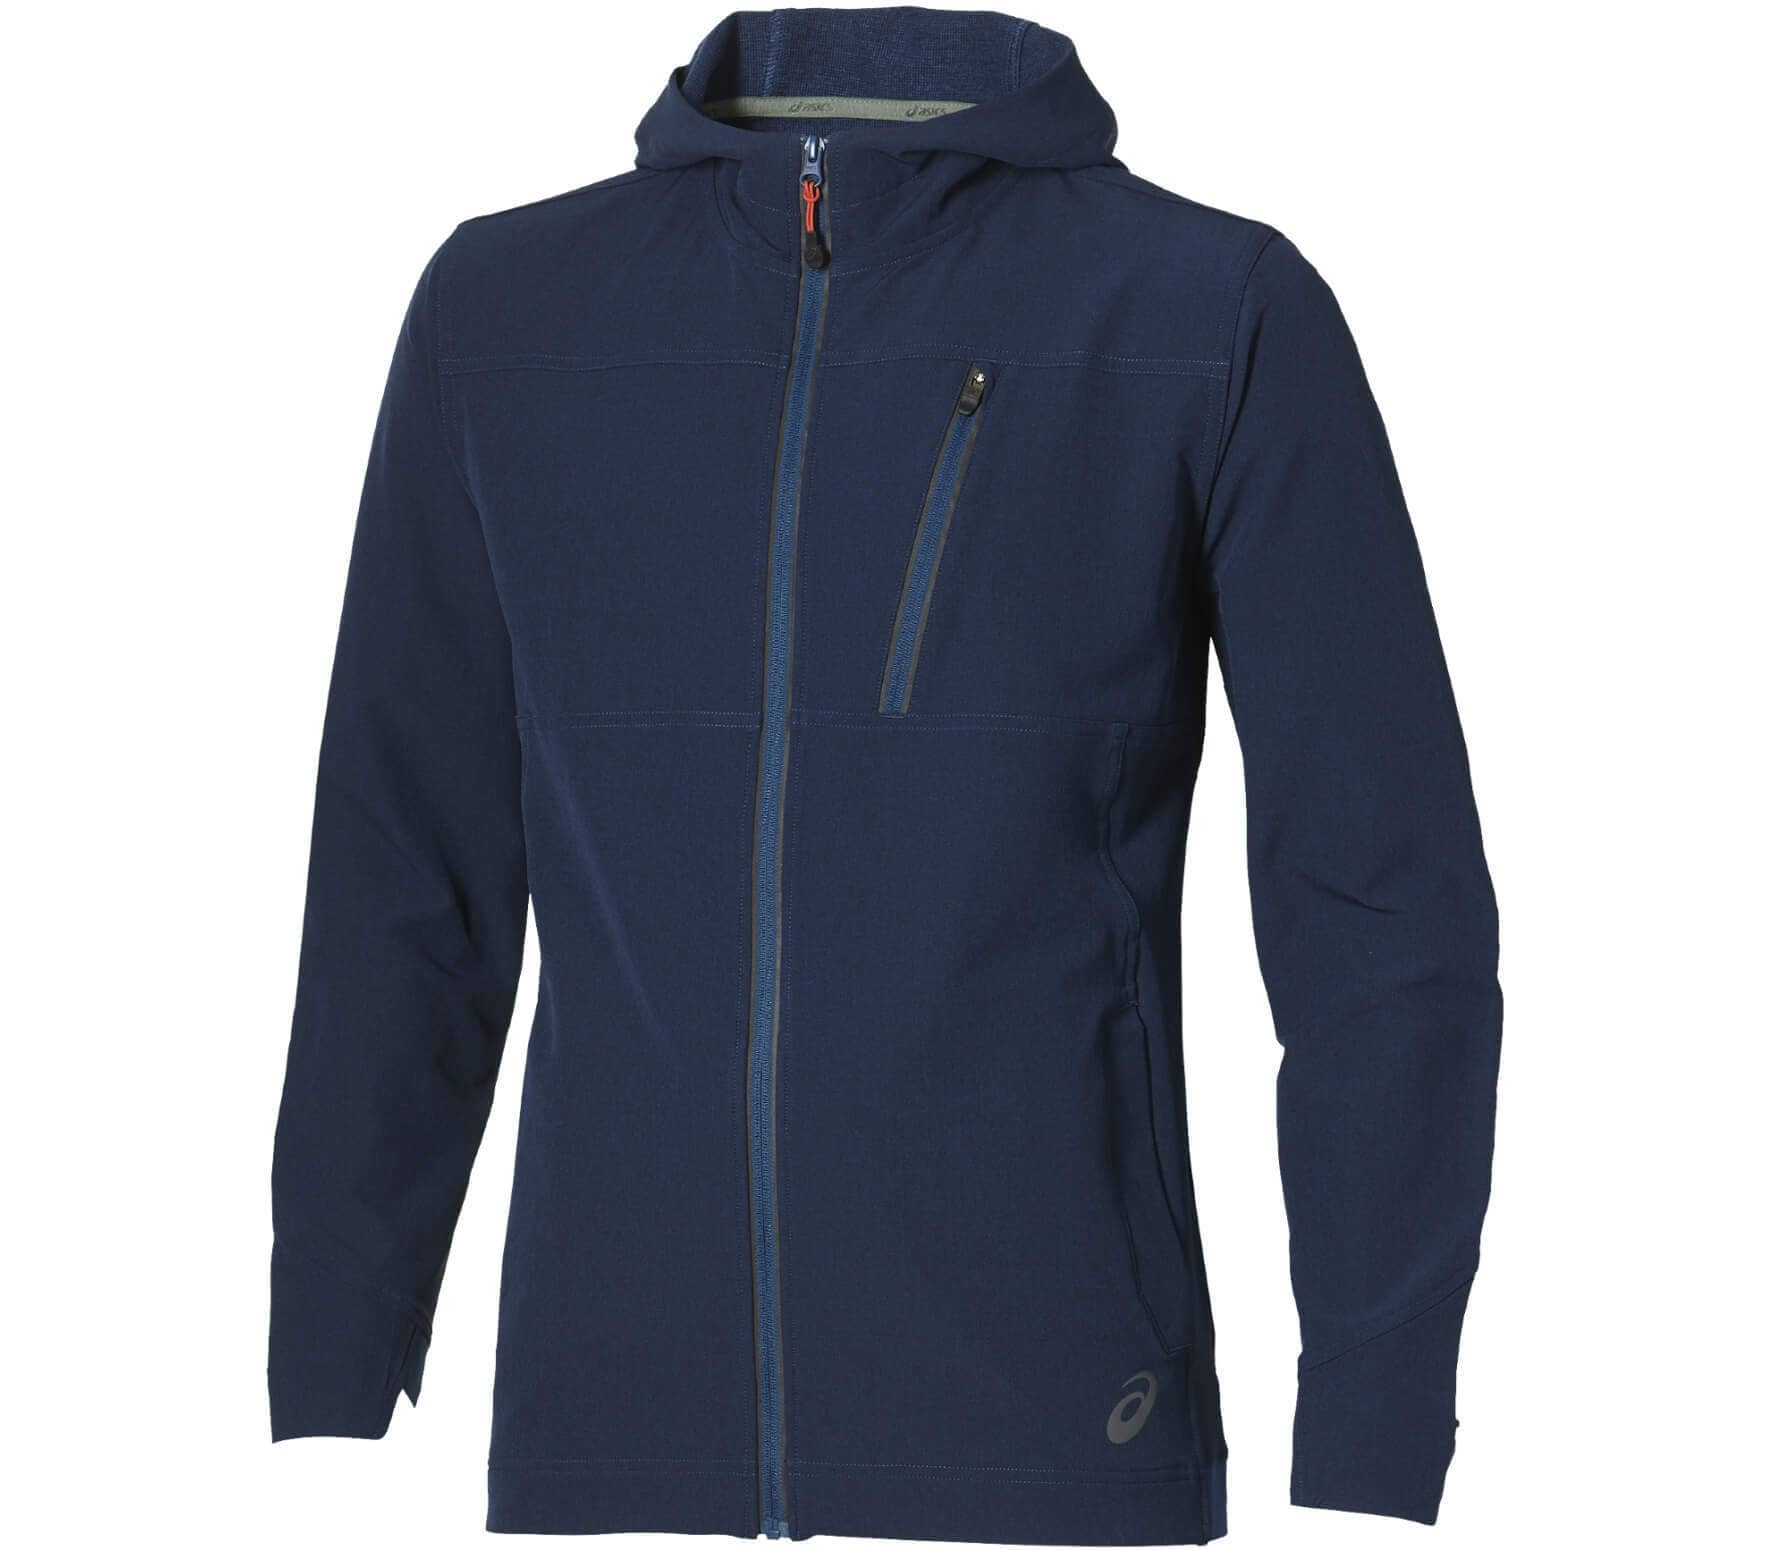 ASICS Yarn Dye Men Training Jacket blue